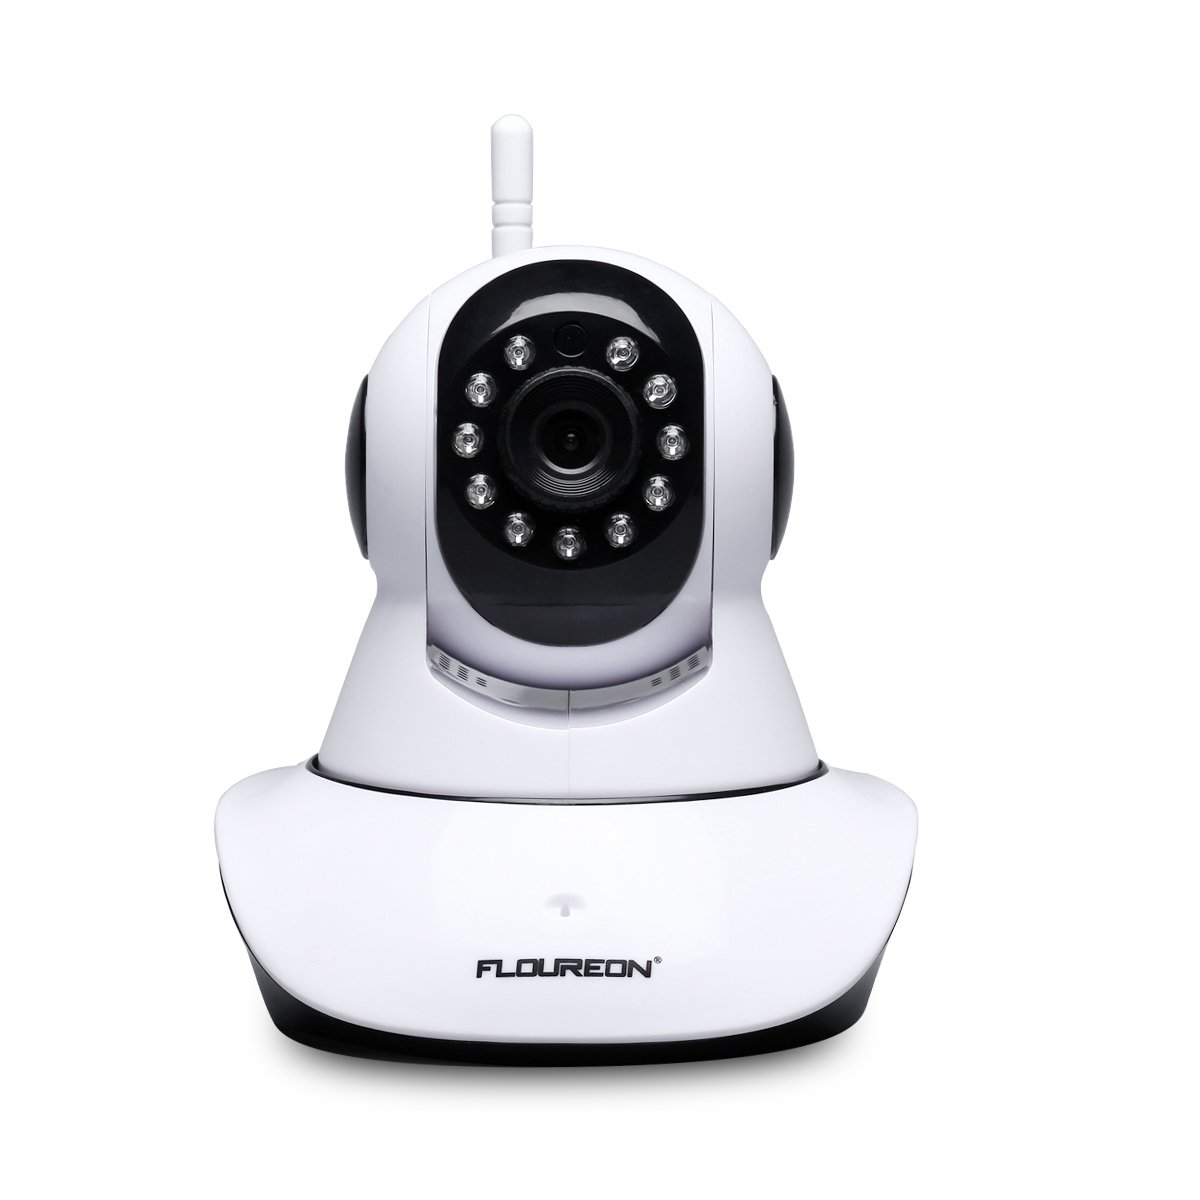 FLOUREON 720P HD IP Camera WIFI Wireless ONVIF CCTV Security Home Security Baby Monitor P/T Pan/Tilt 1.0 Megapixel Night Vision Support 24 Hours Loop Video Recording